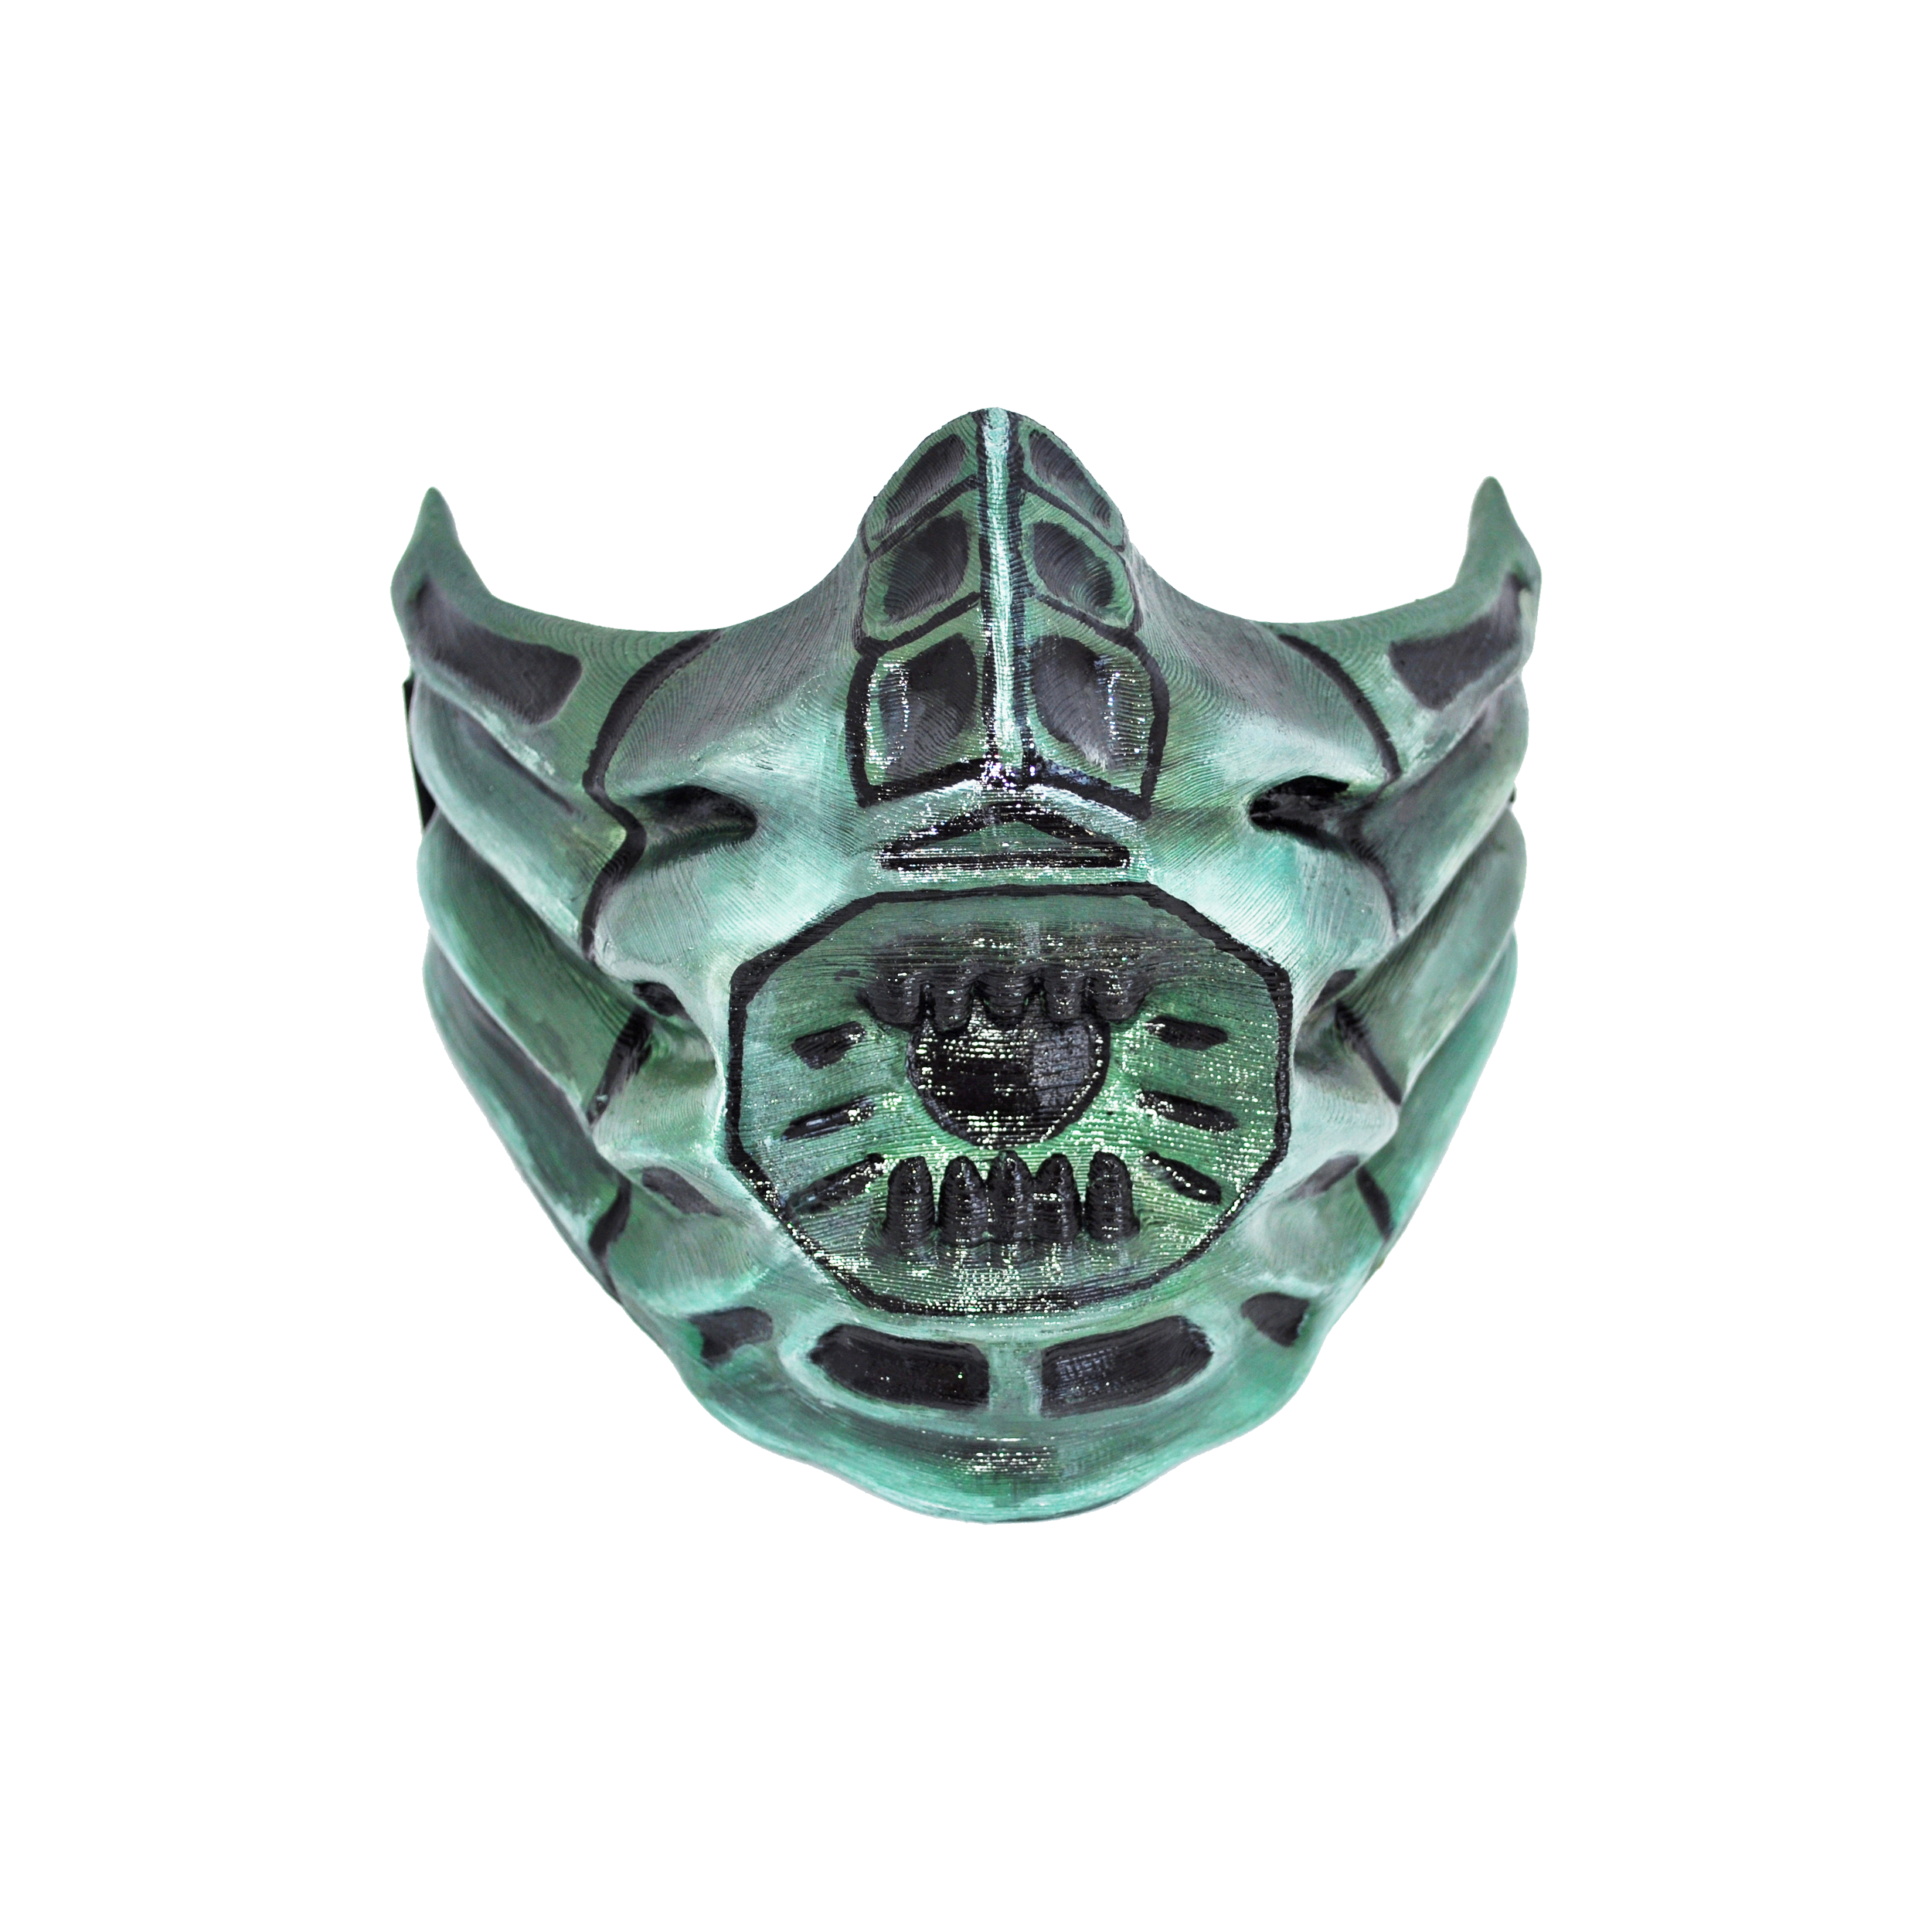 Reptile Mask From Mk Cosplay Or Airsoft Mask Costumes From Destiny Star Wars Overwatch Designedby3d Com Mortal Kombat Airsoft Mask Mortal Kombat Characters